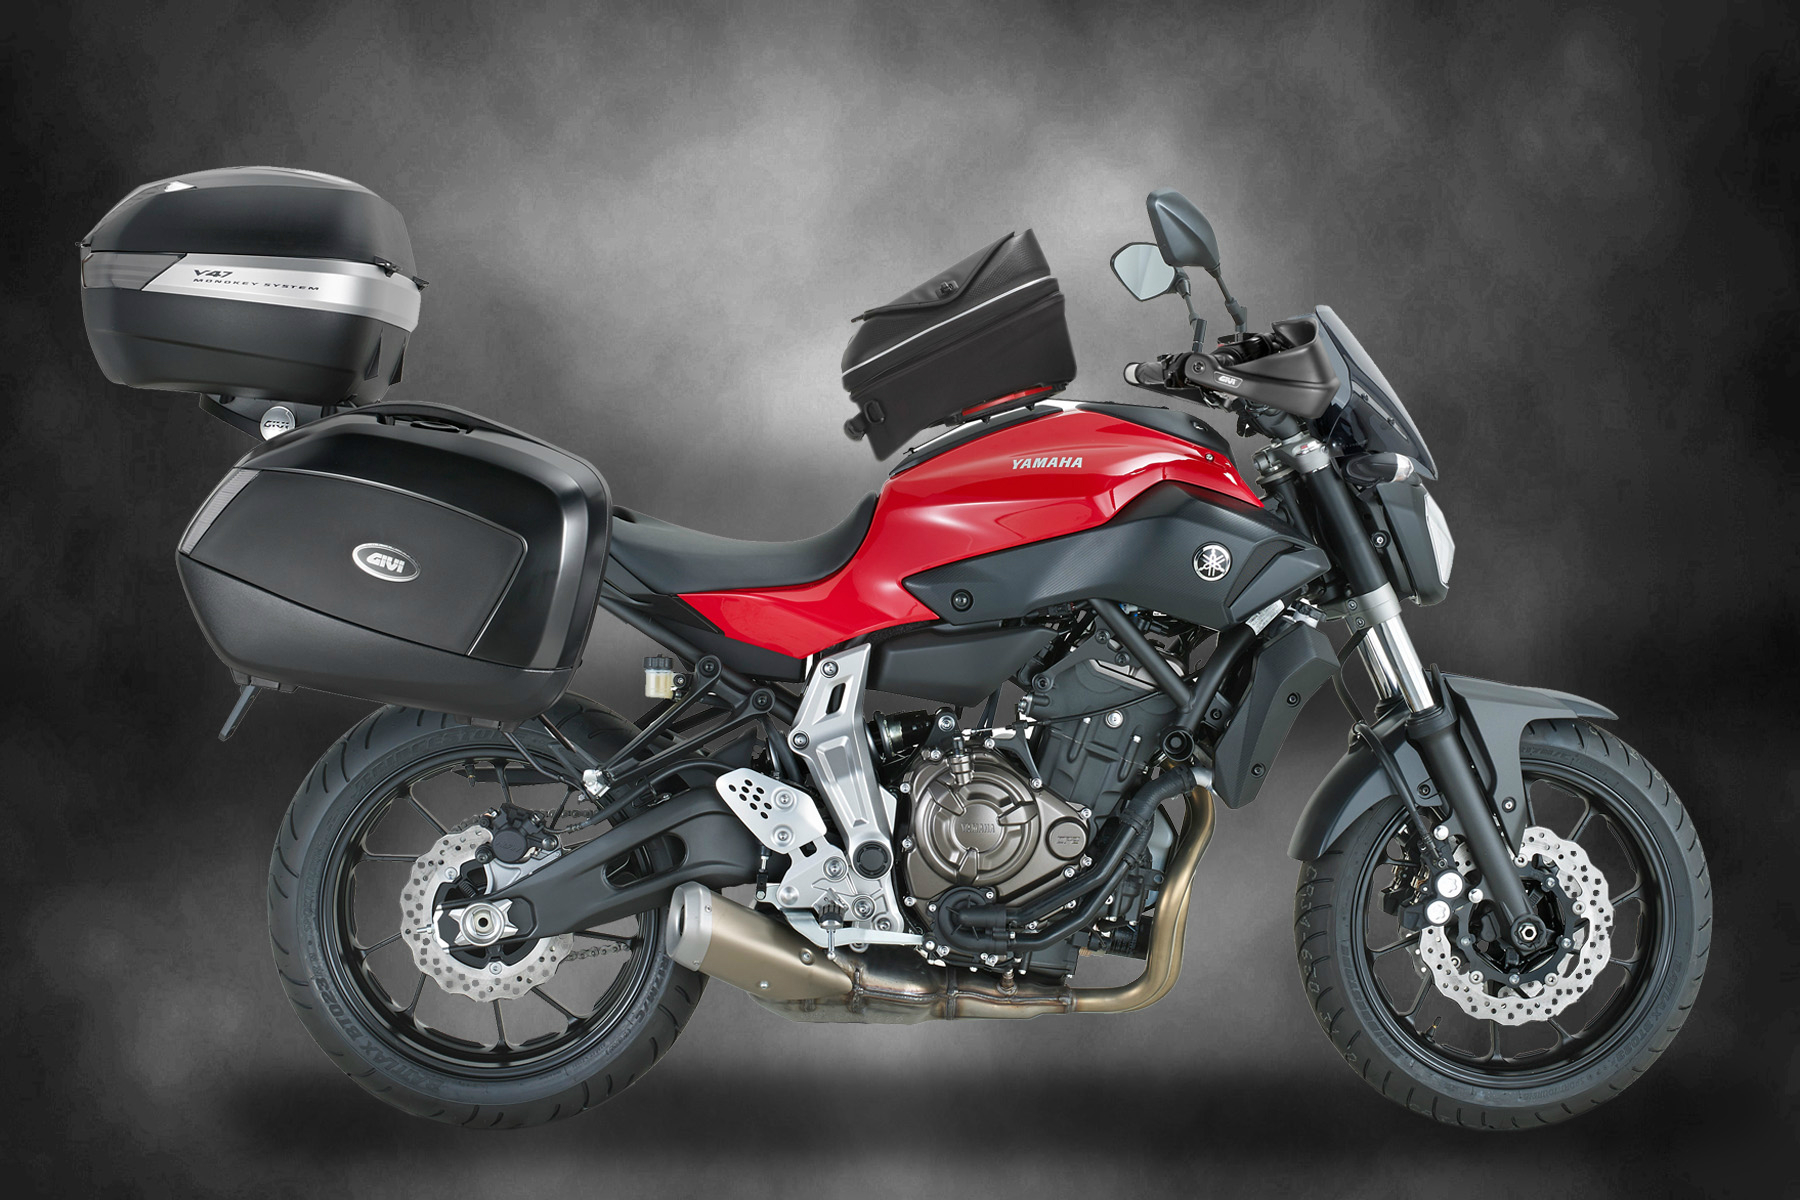 Mt 07 Gets The Touring Treatment By Givi Visordown